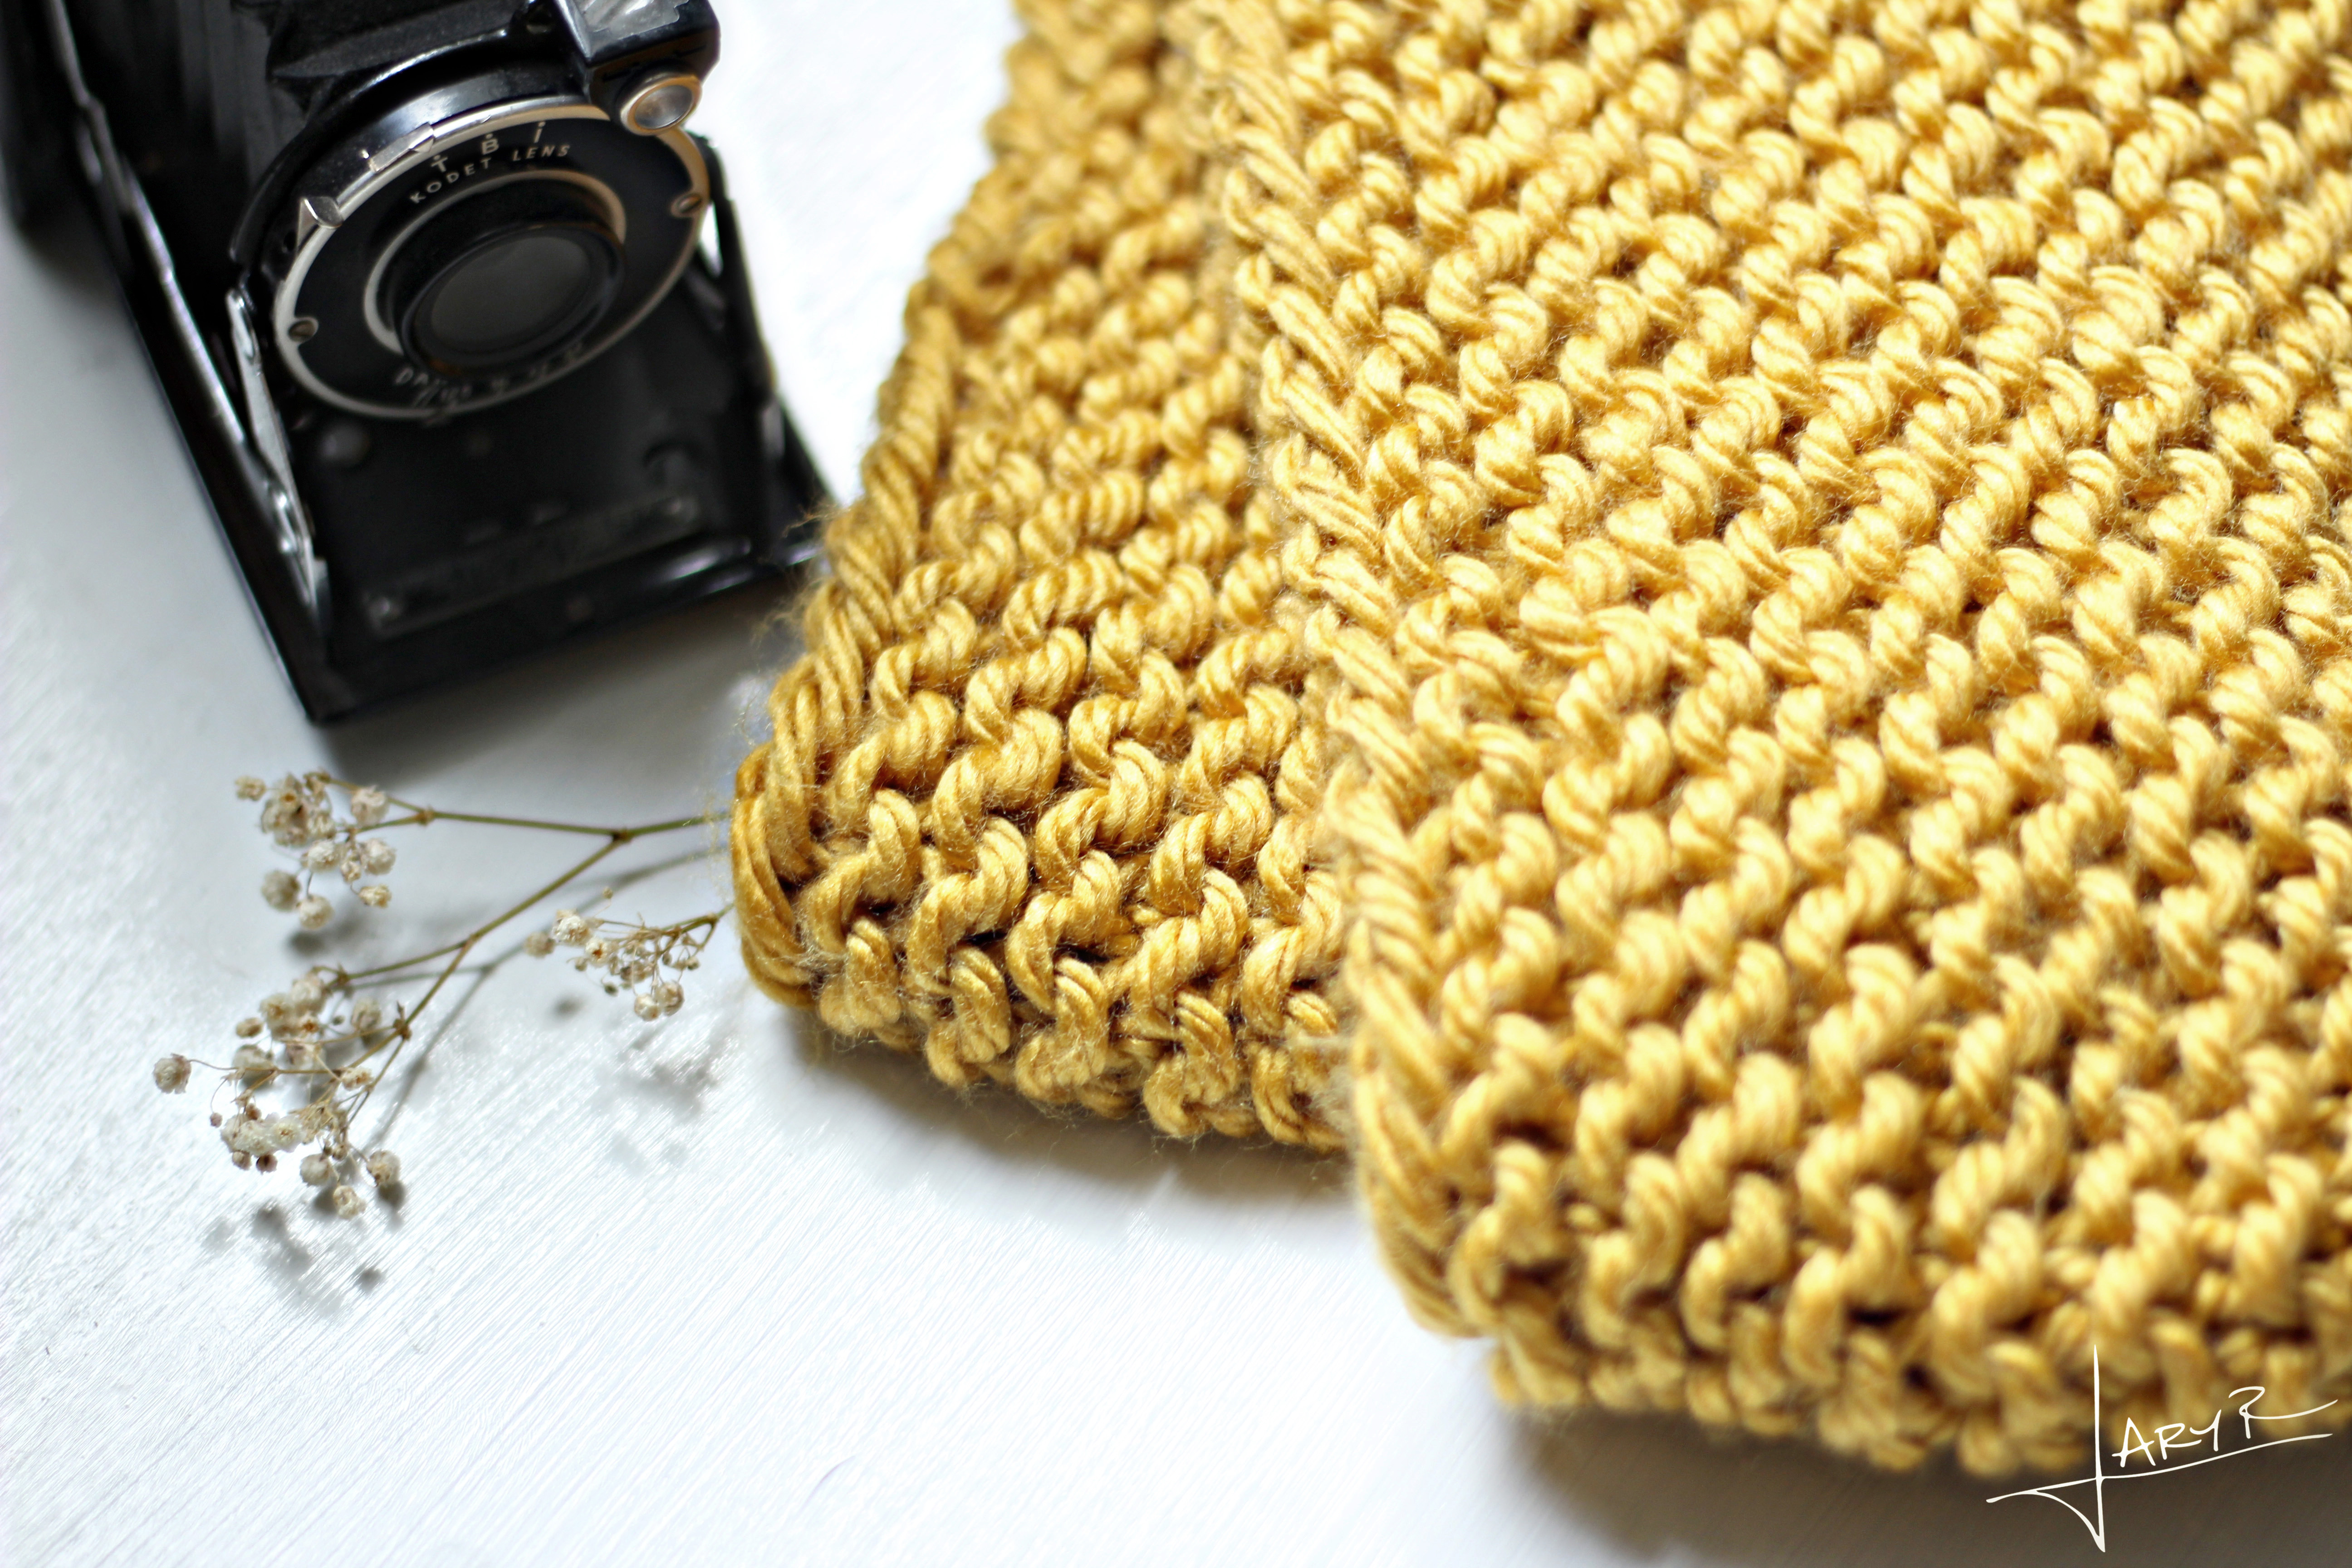 Knitting Inspiration : Inspiration nook diy food photography los angeles